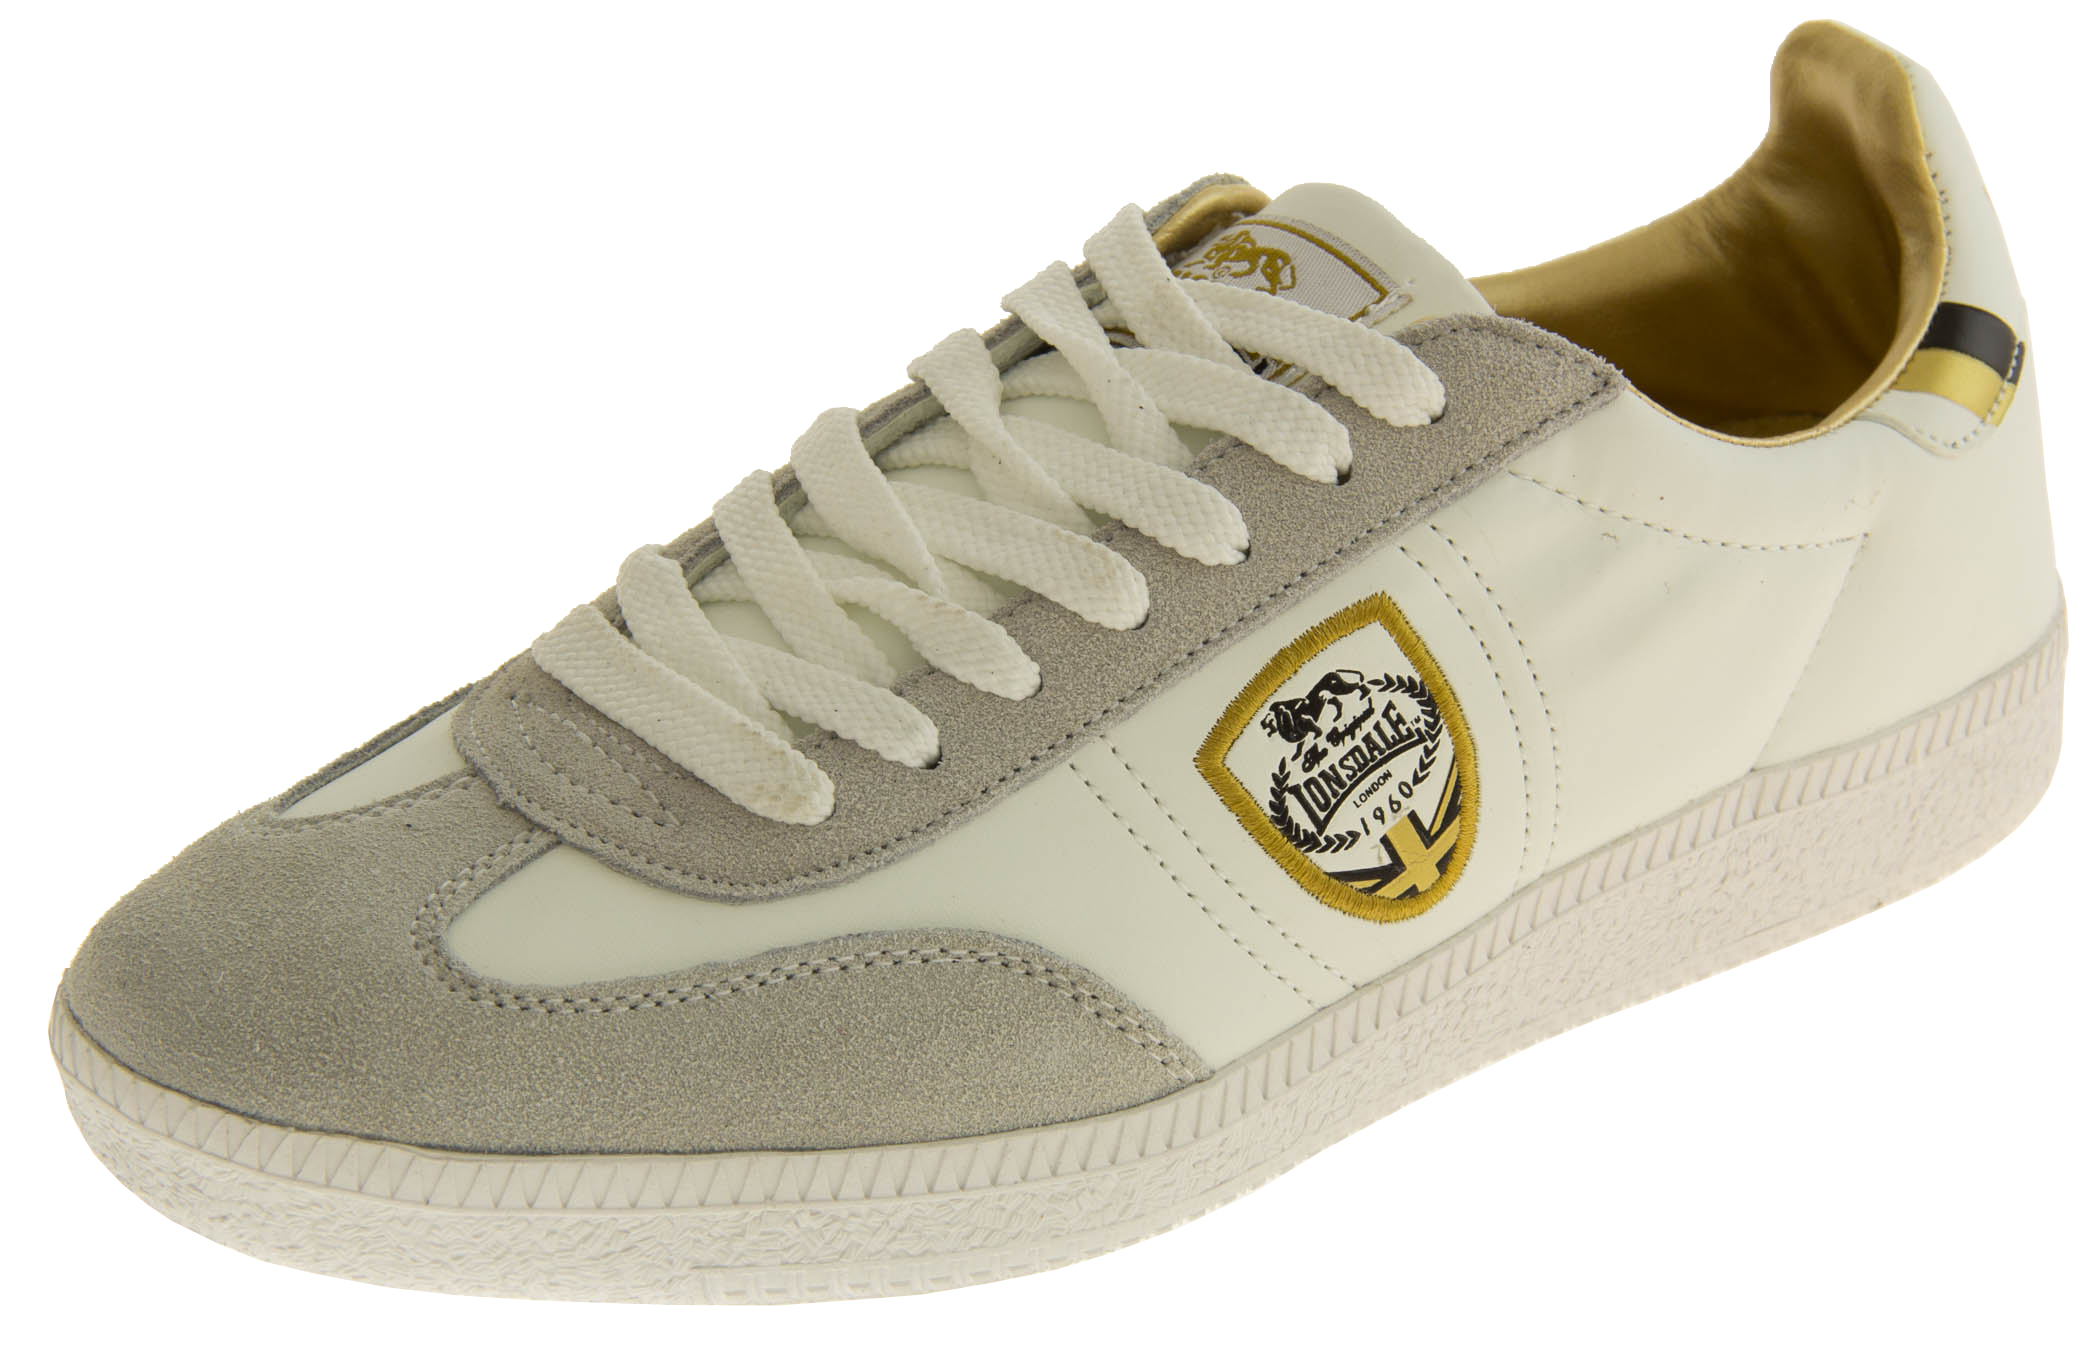 Mens White Leather LONSDALE Trainers Gold Lace Up Casual Sports Shoes Sz Size 7